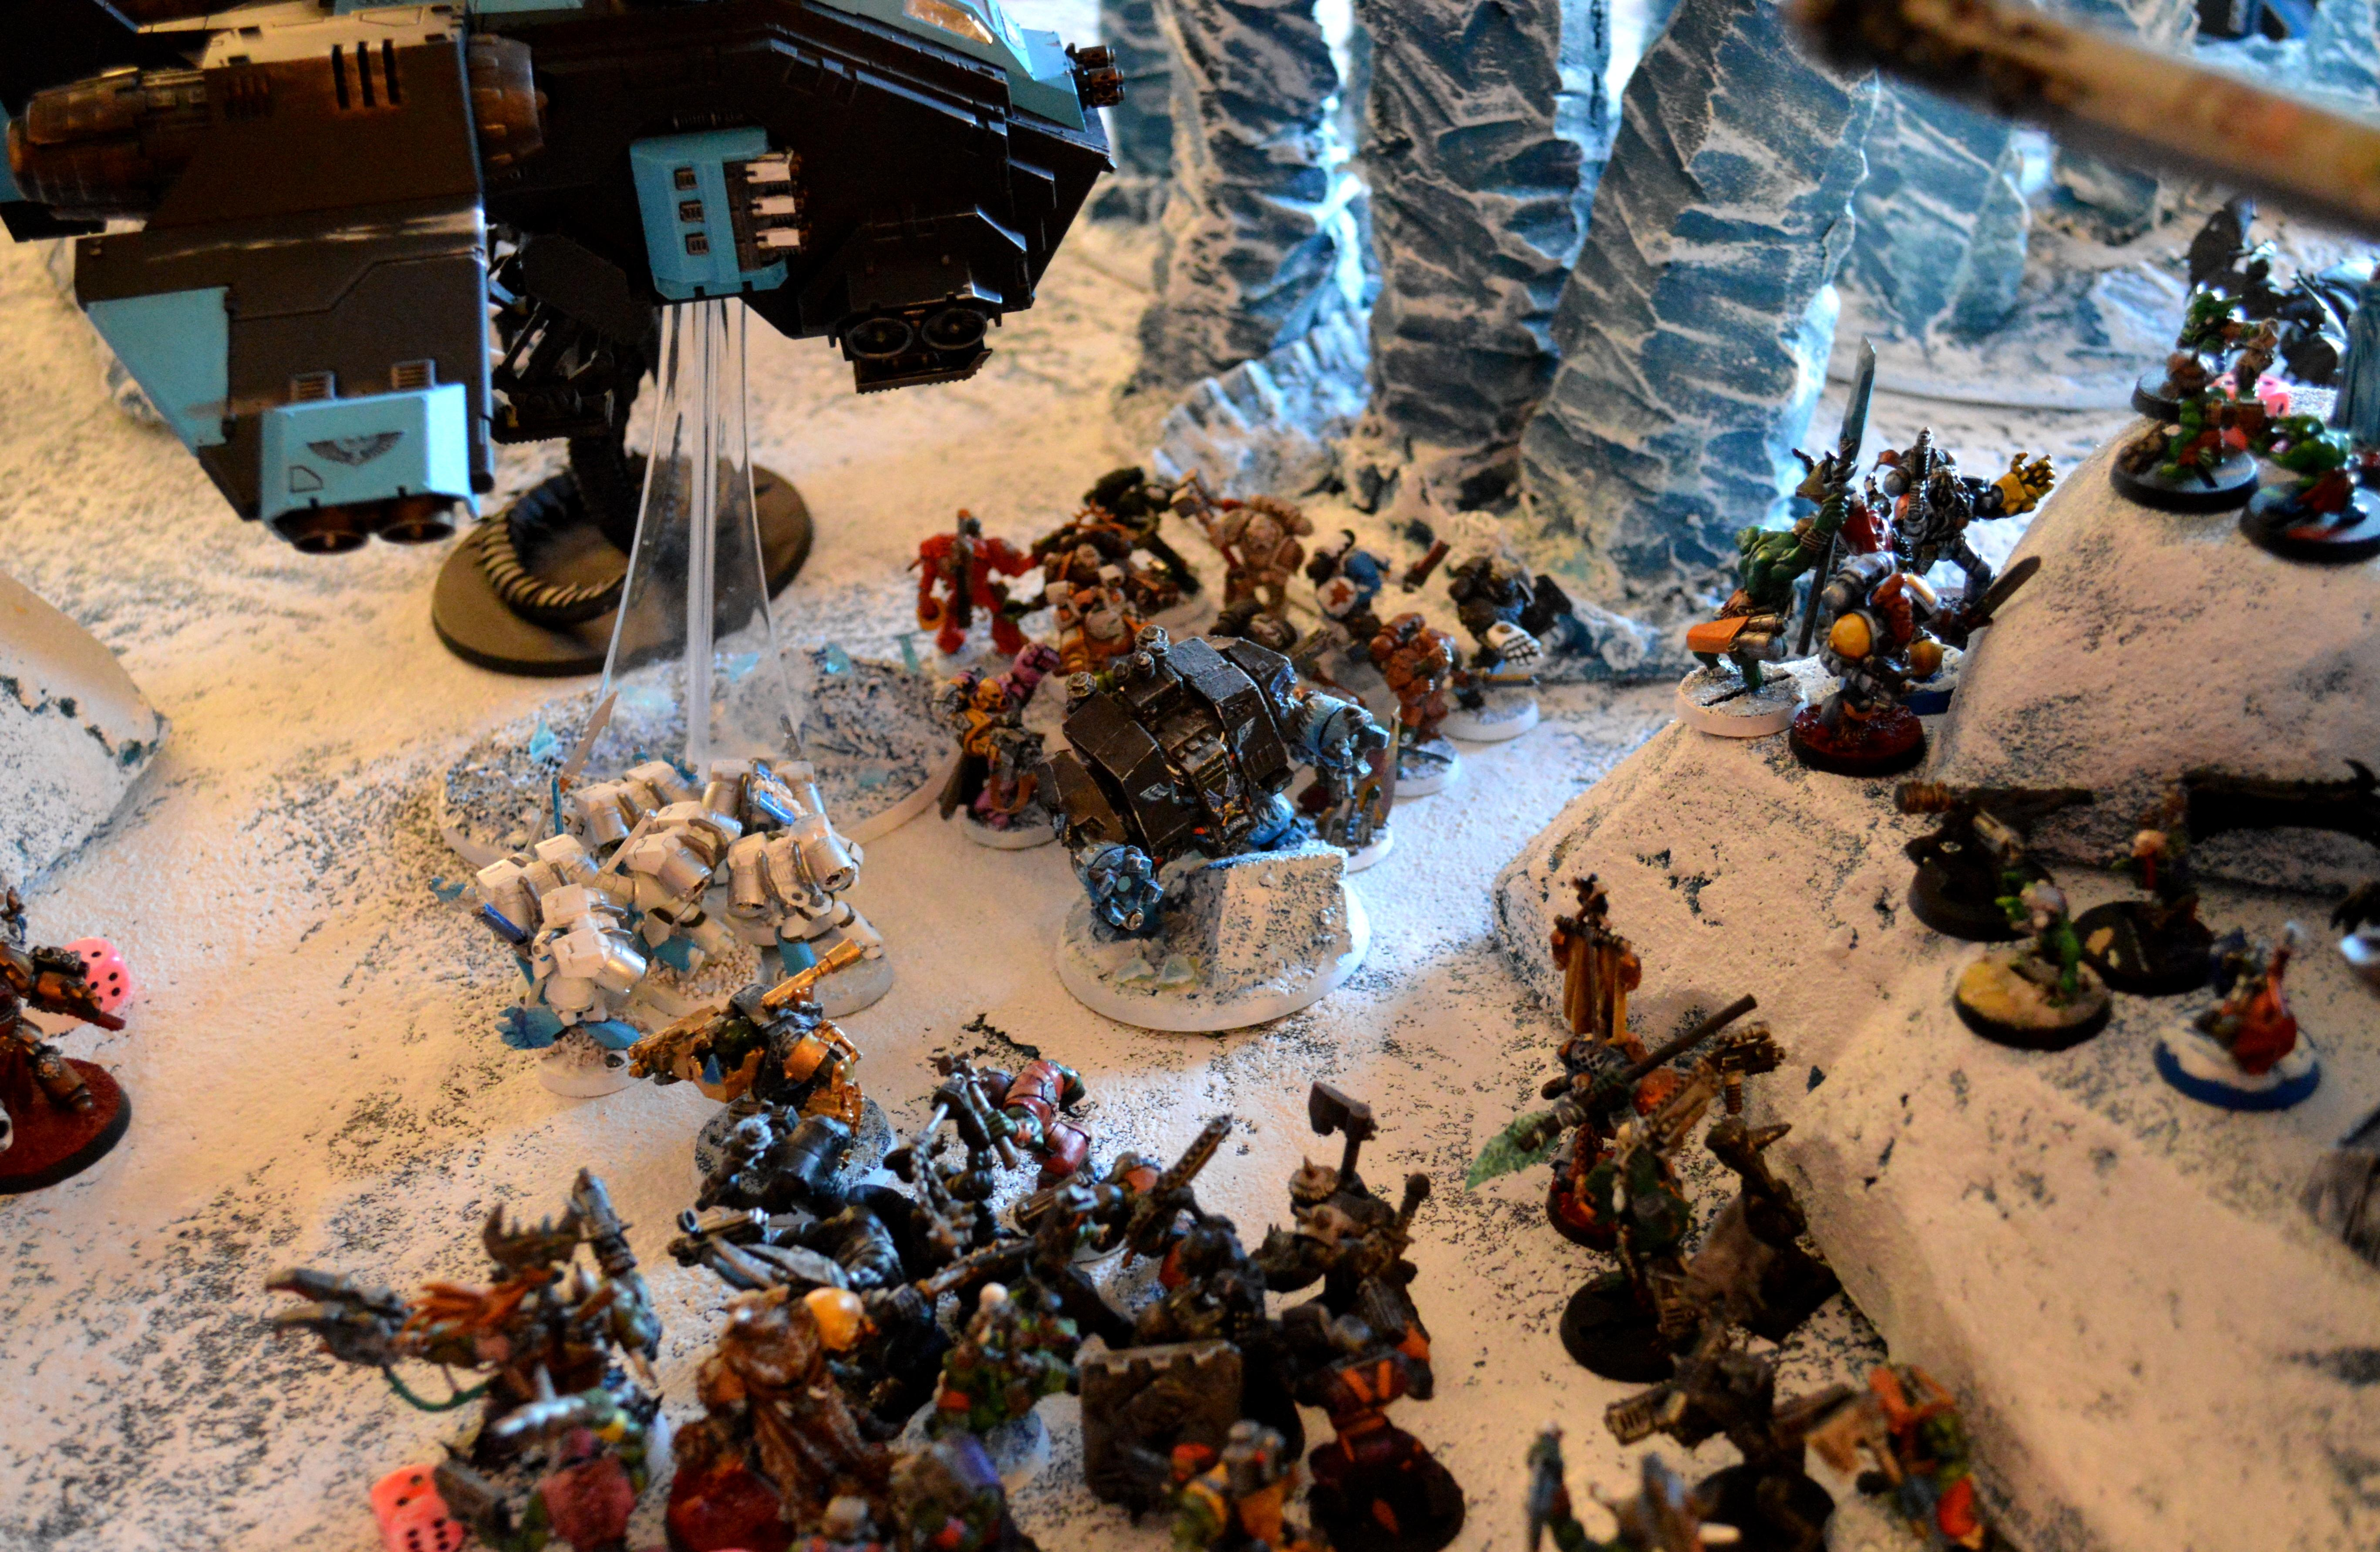 Apocalypse, Ice Angels, Ice Terrain, Orks, Space Marines, Space Wolves, Stompa, Tyranids, Warhammer 40,000